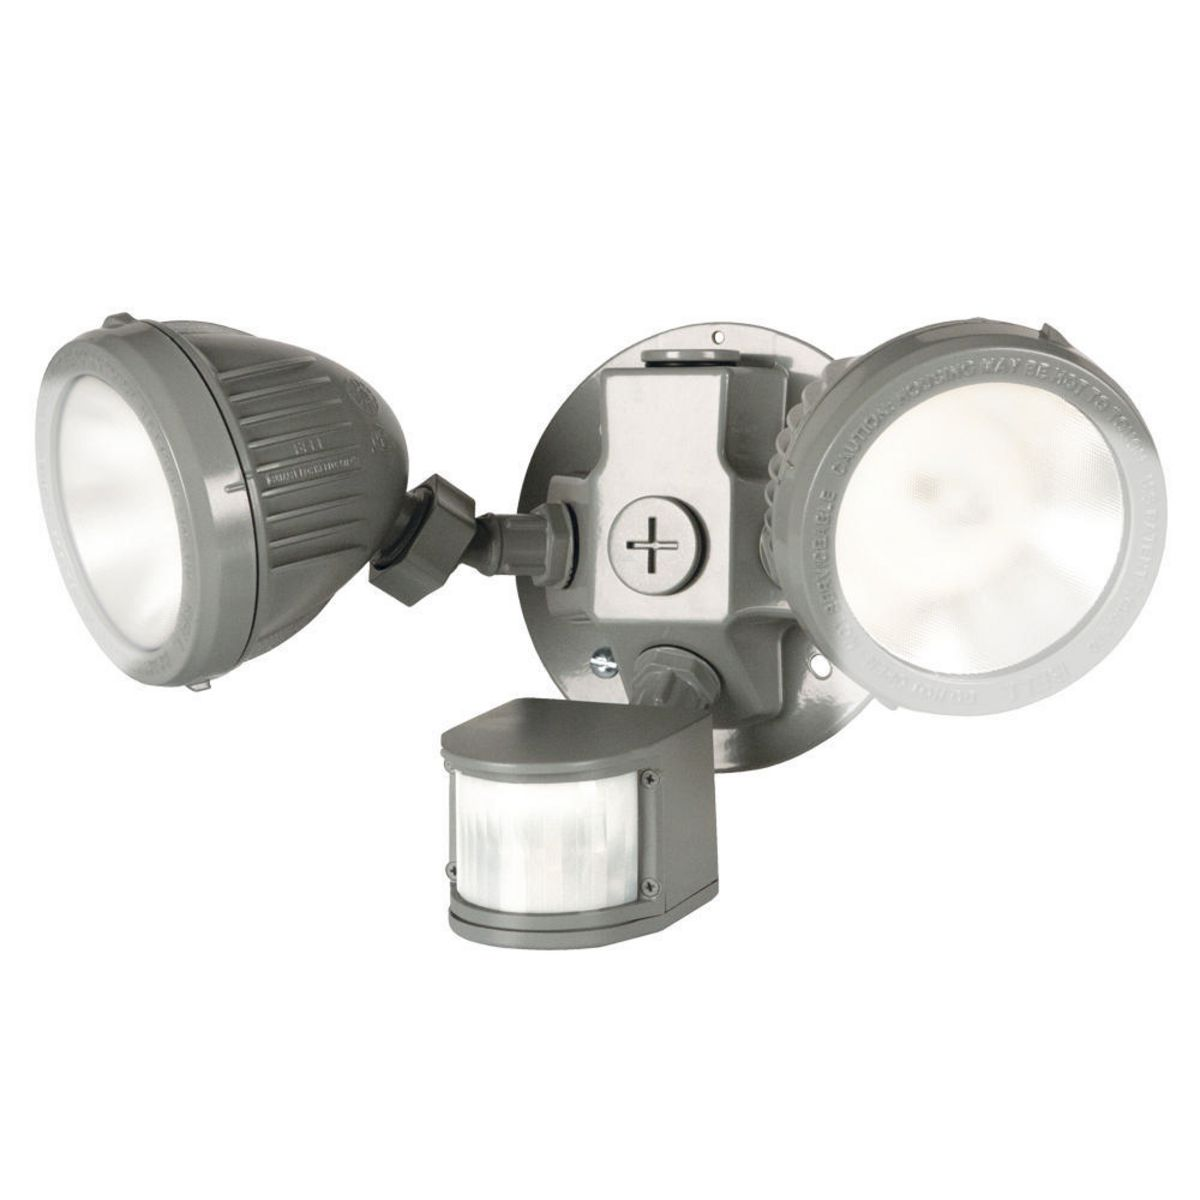 RND BOX/CVR/2 LED LHTS/MOTION SENSR GRAY